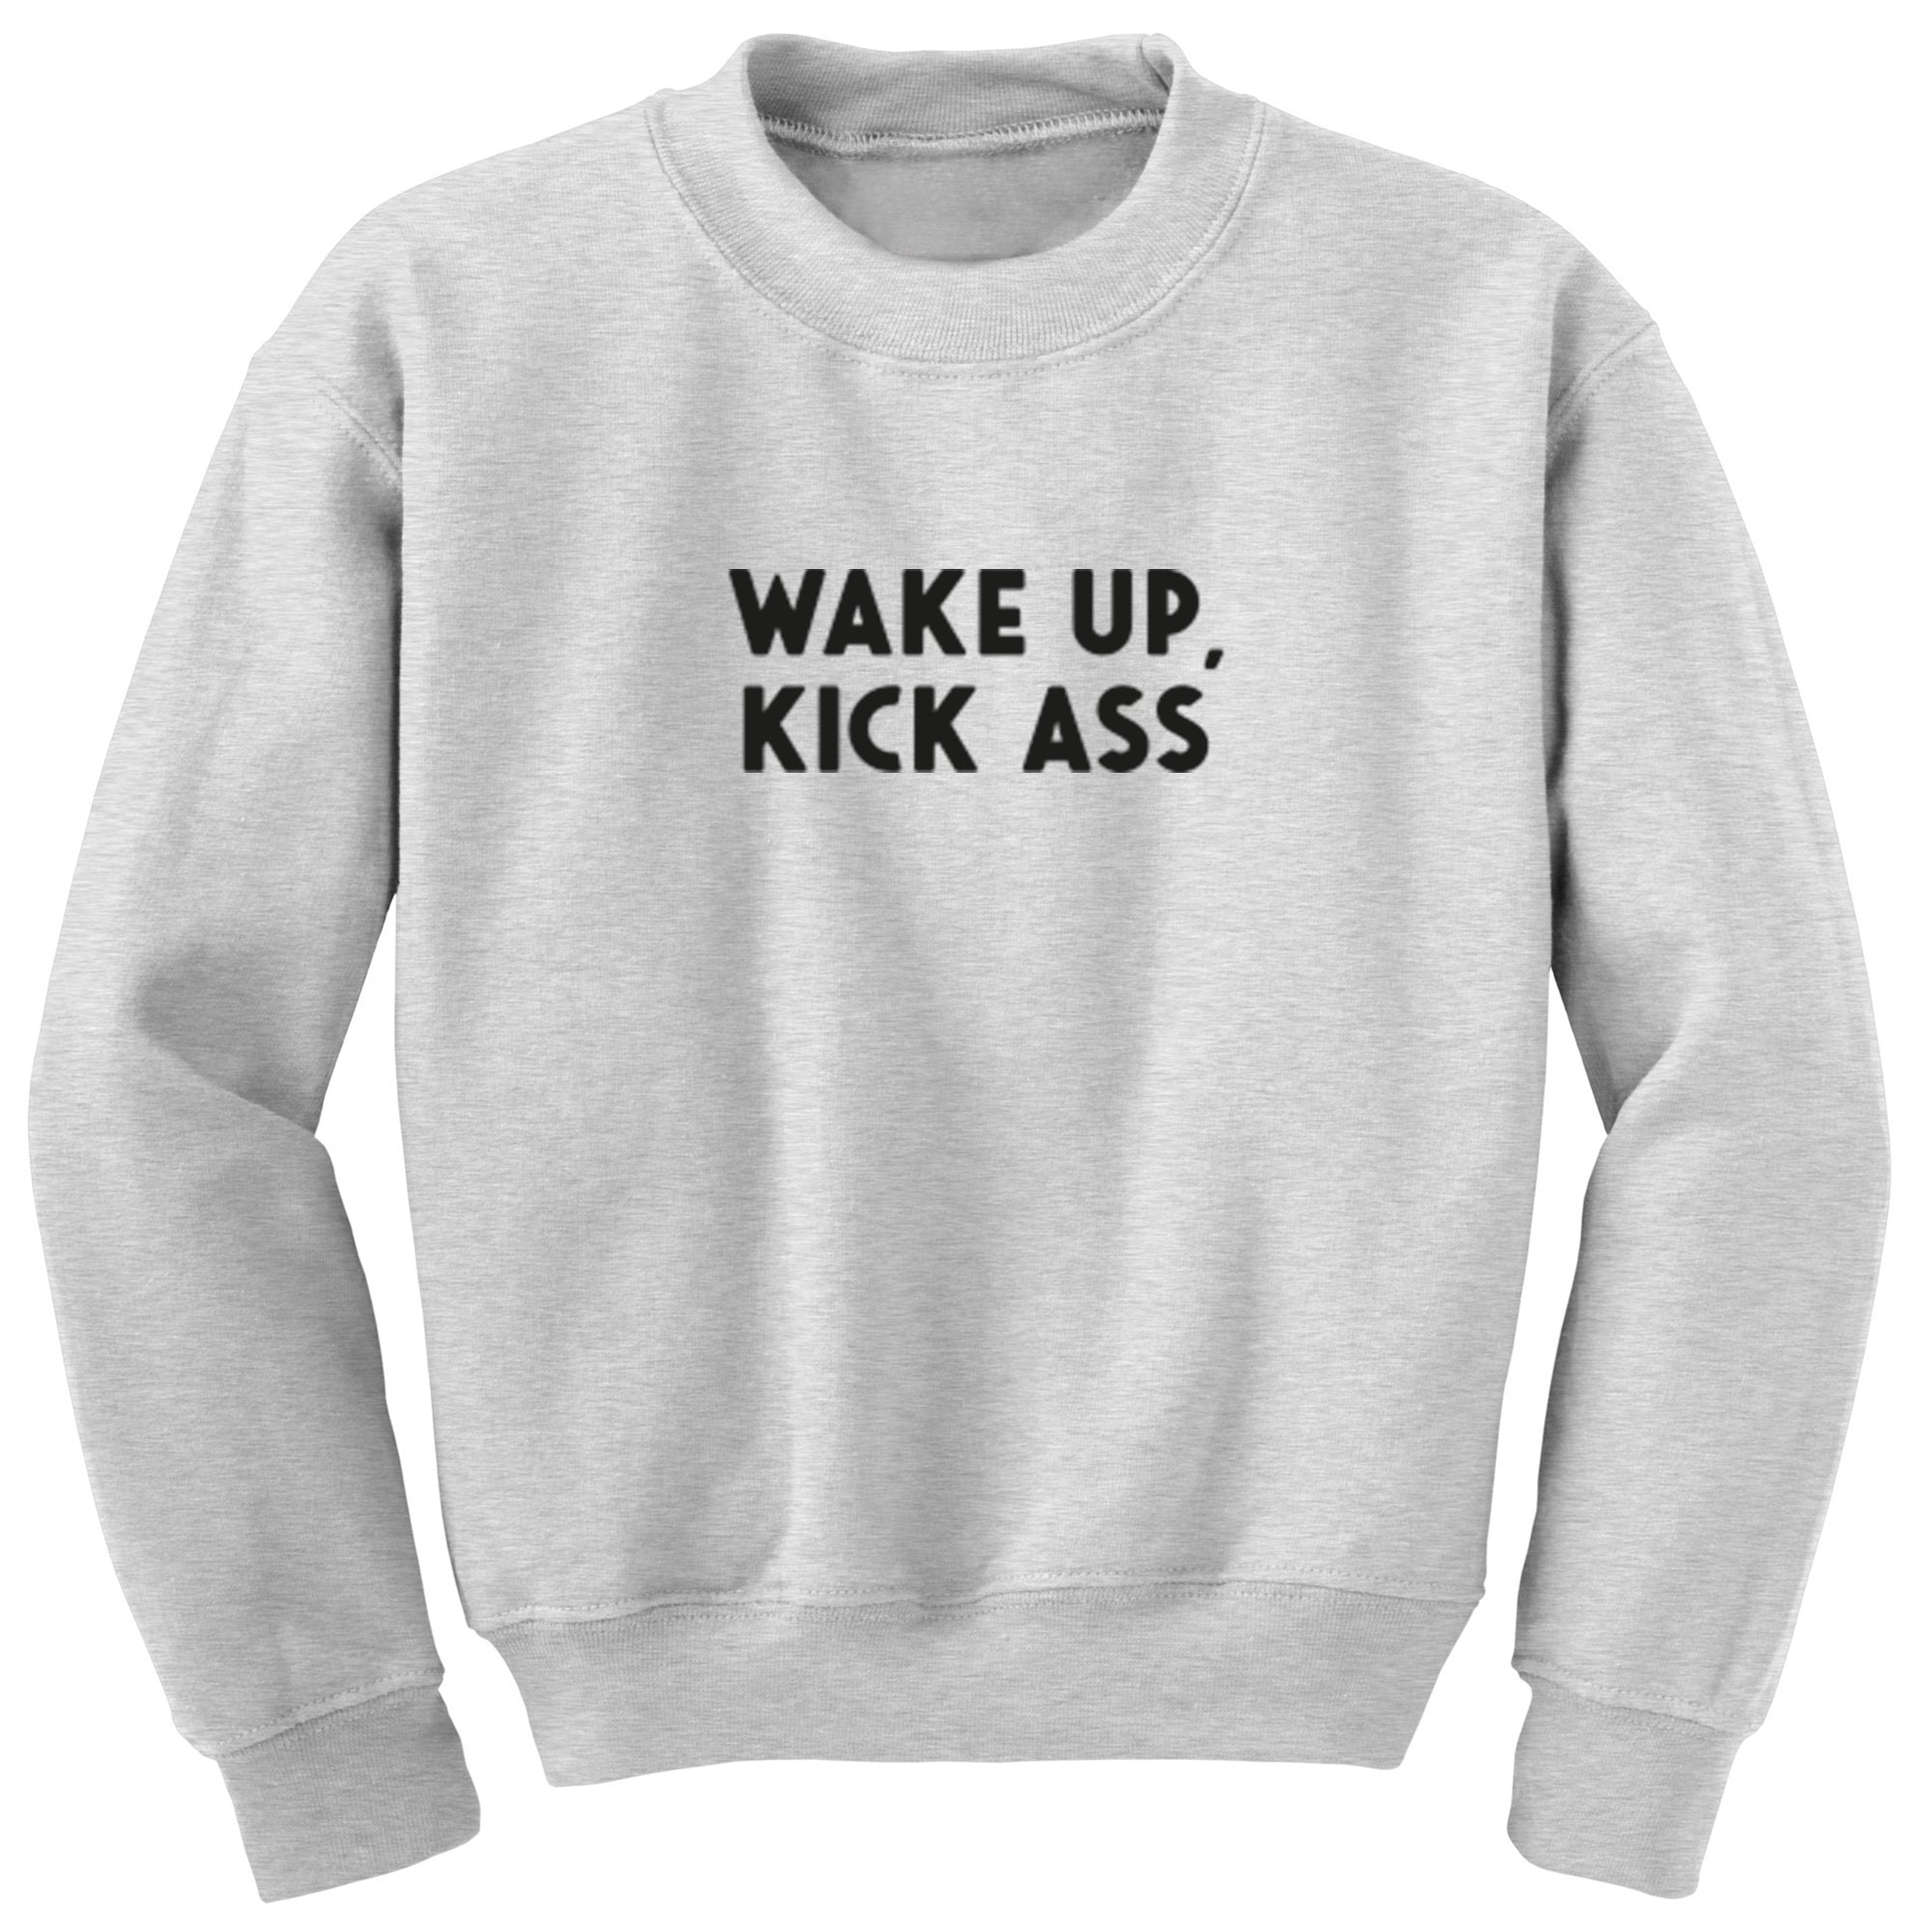 Wake Up, Kick Ass Unisex Jumper S0905 - Illustrated Identity Ltd.